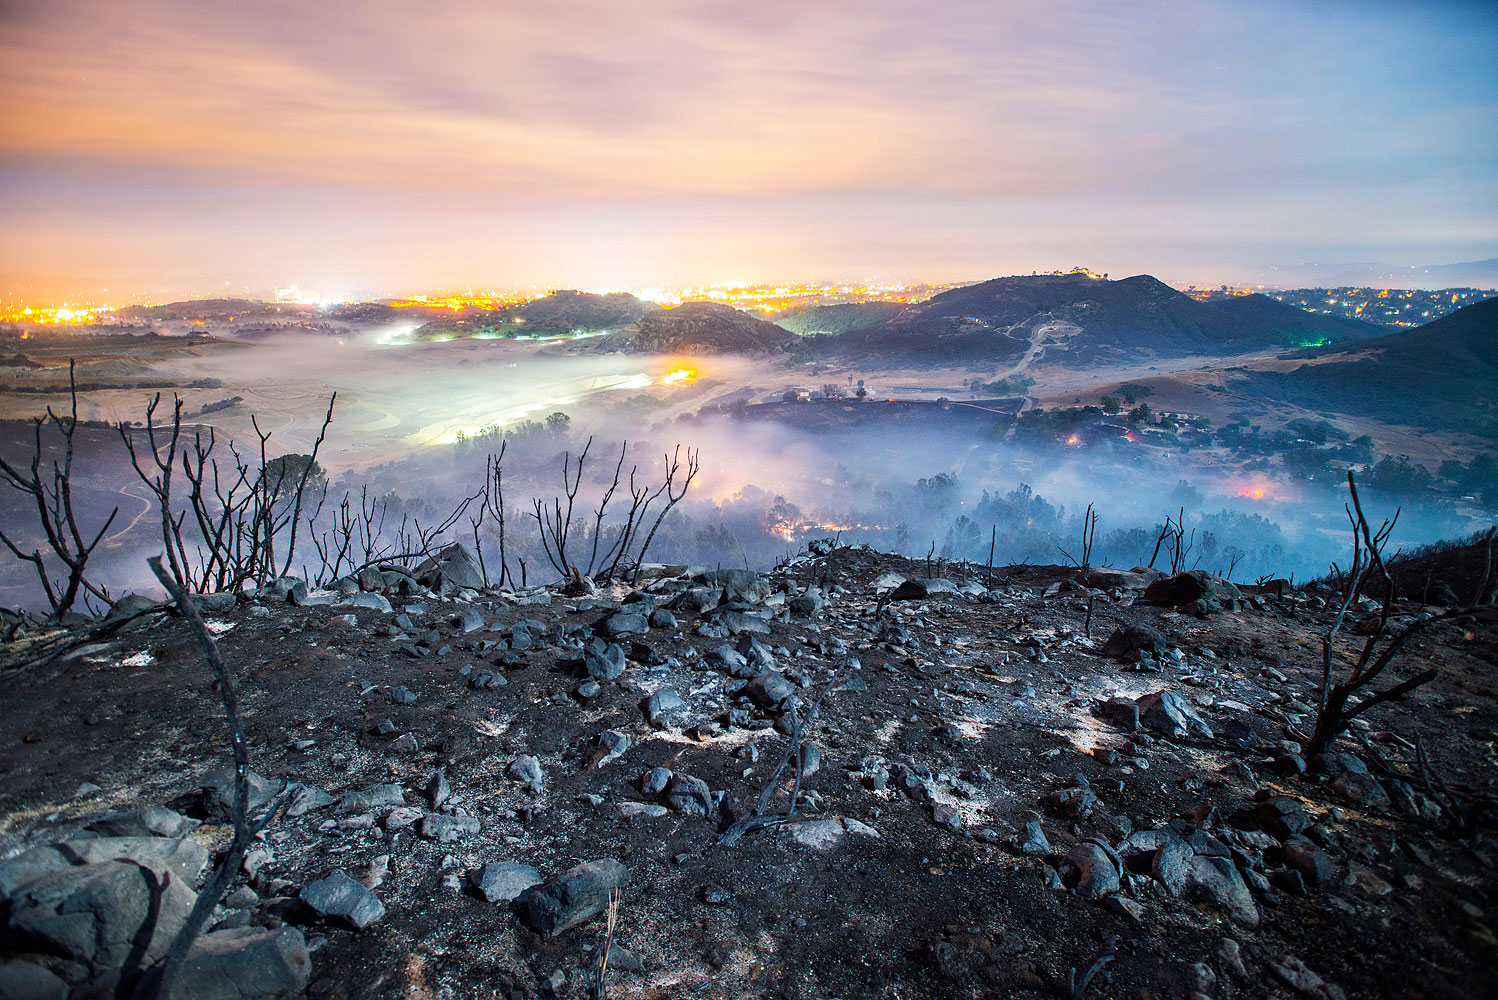 A longtime exposure shows smoldering remains of overnight fires on the hillsides of San Marcos, San Diego county, Calif., May 16, 2014.